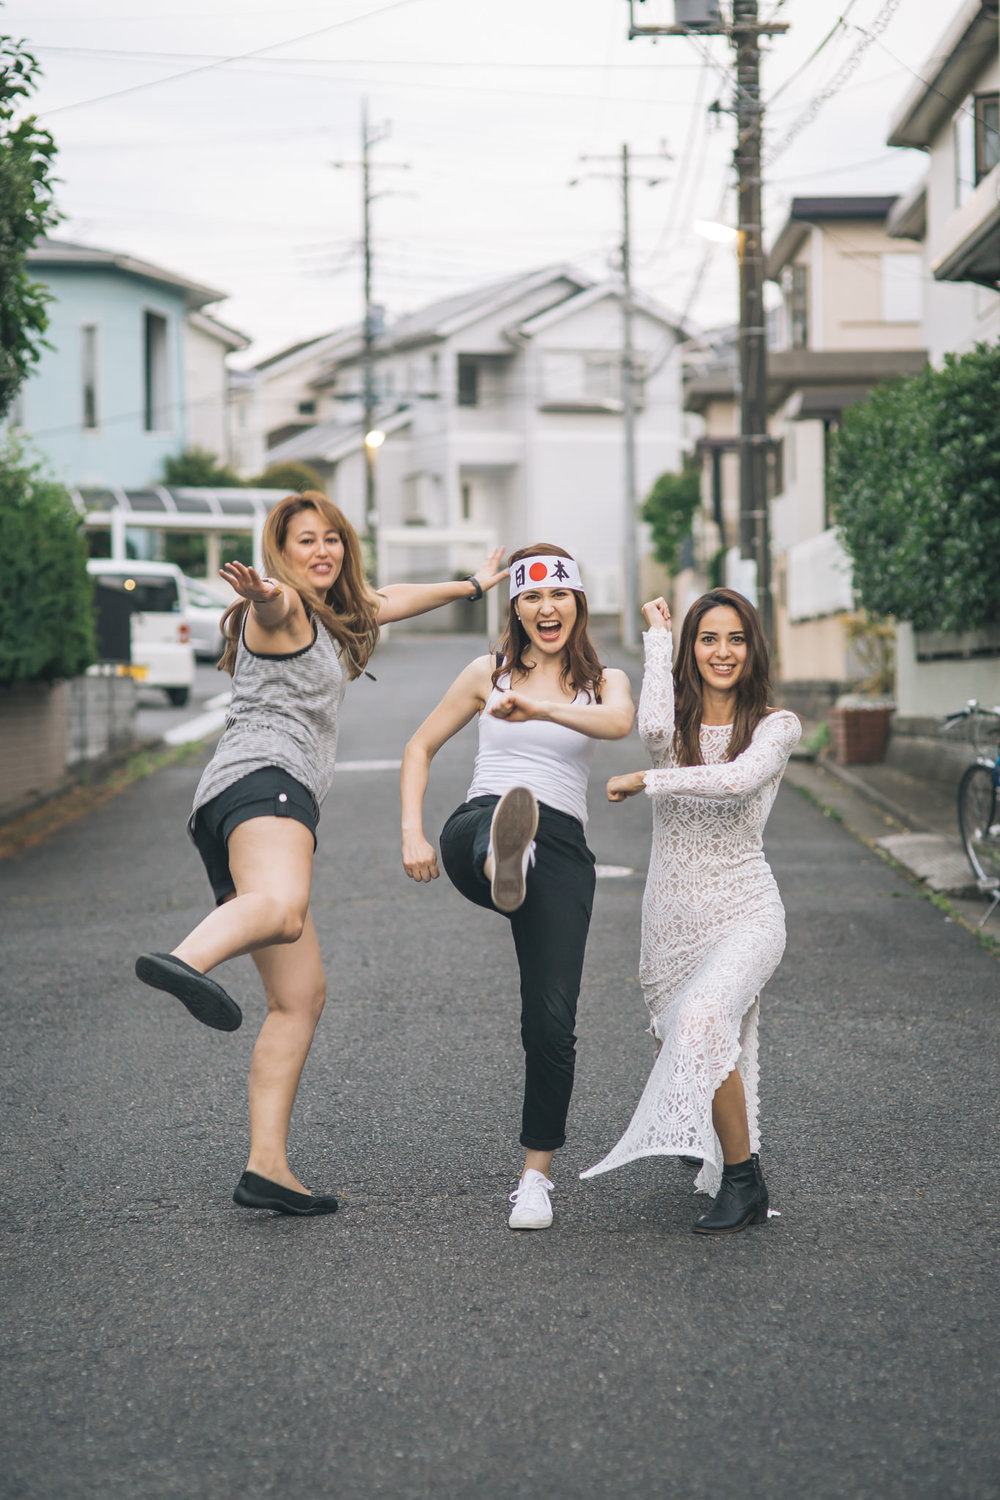 Being silly in our parent's neighborhood in Japan.